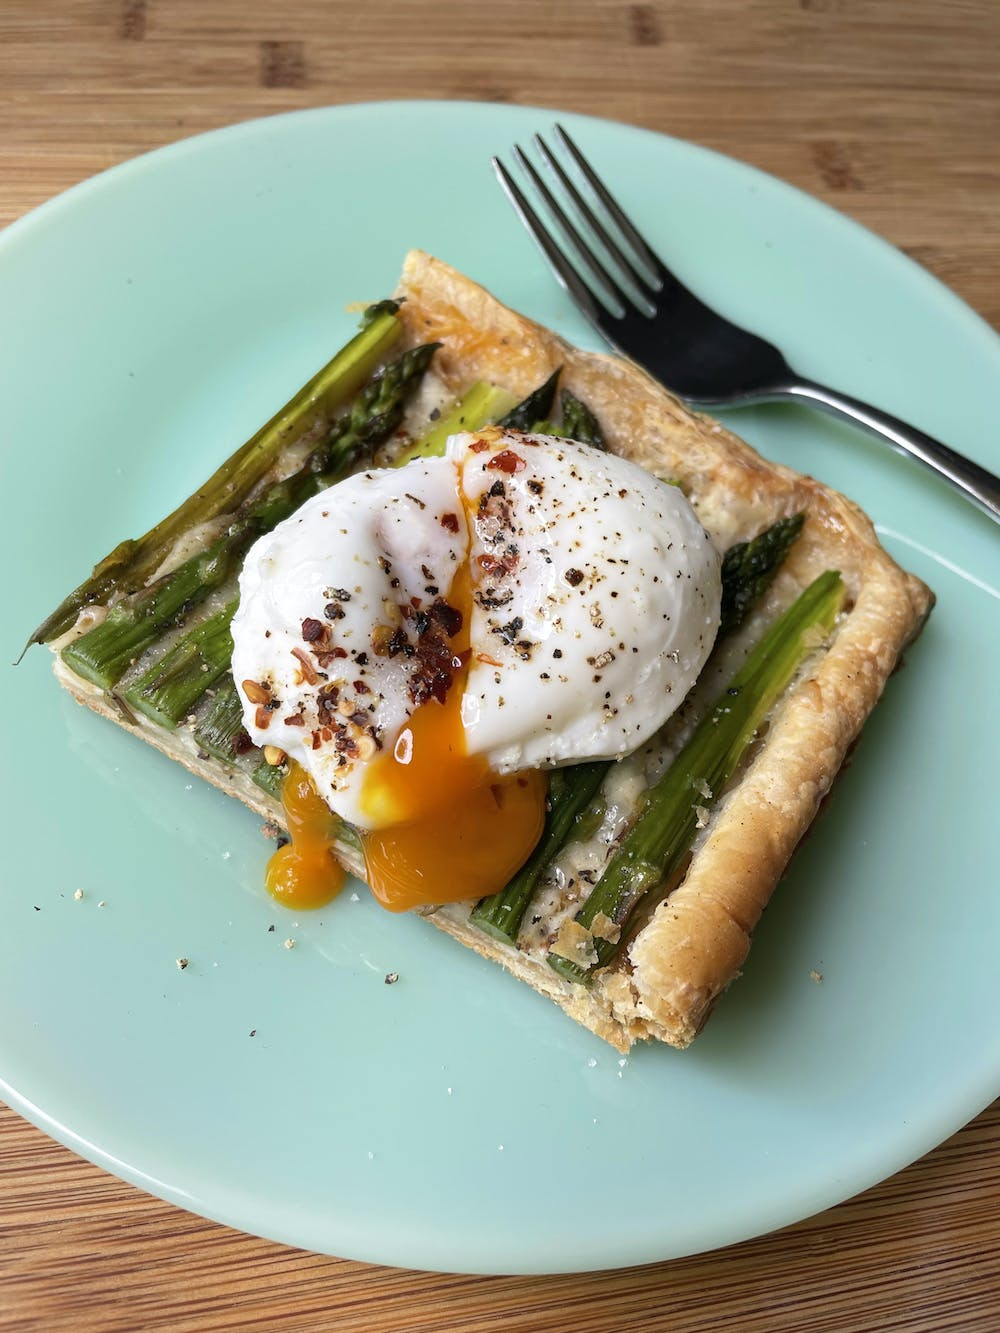 asparagus tart with poached egg on top